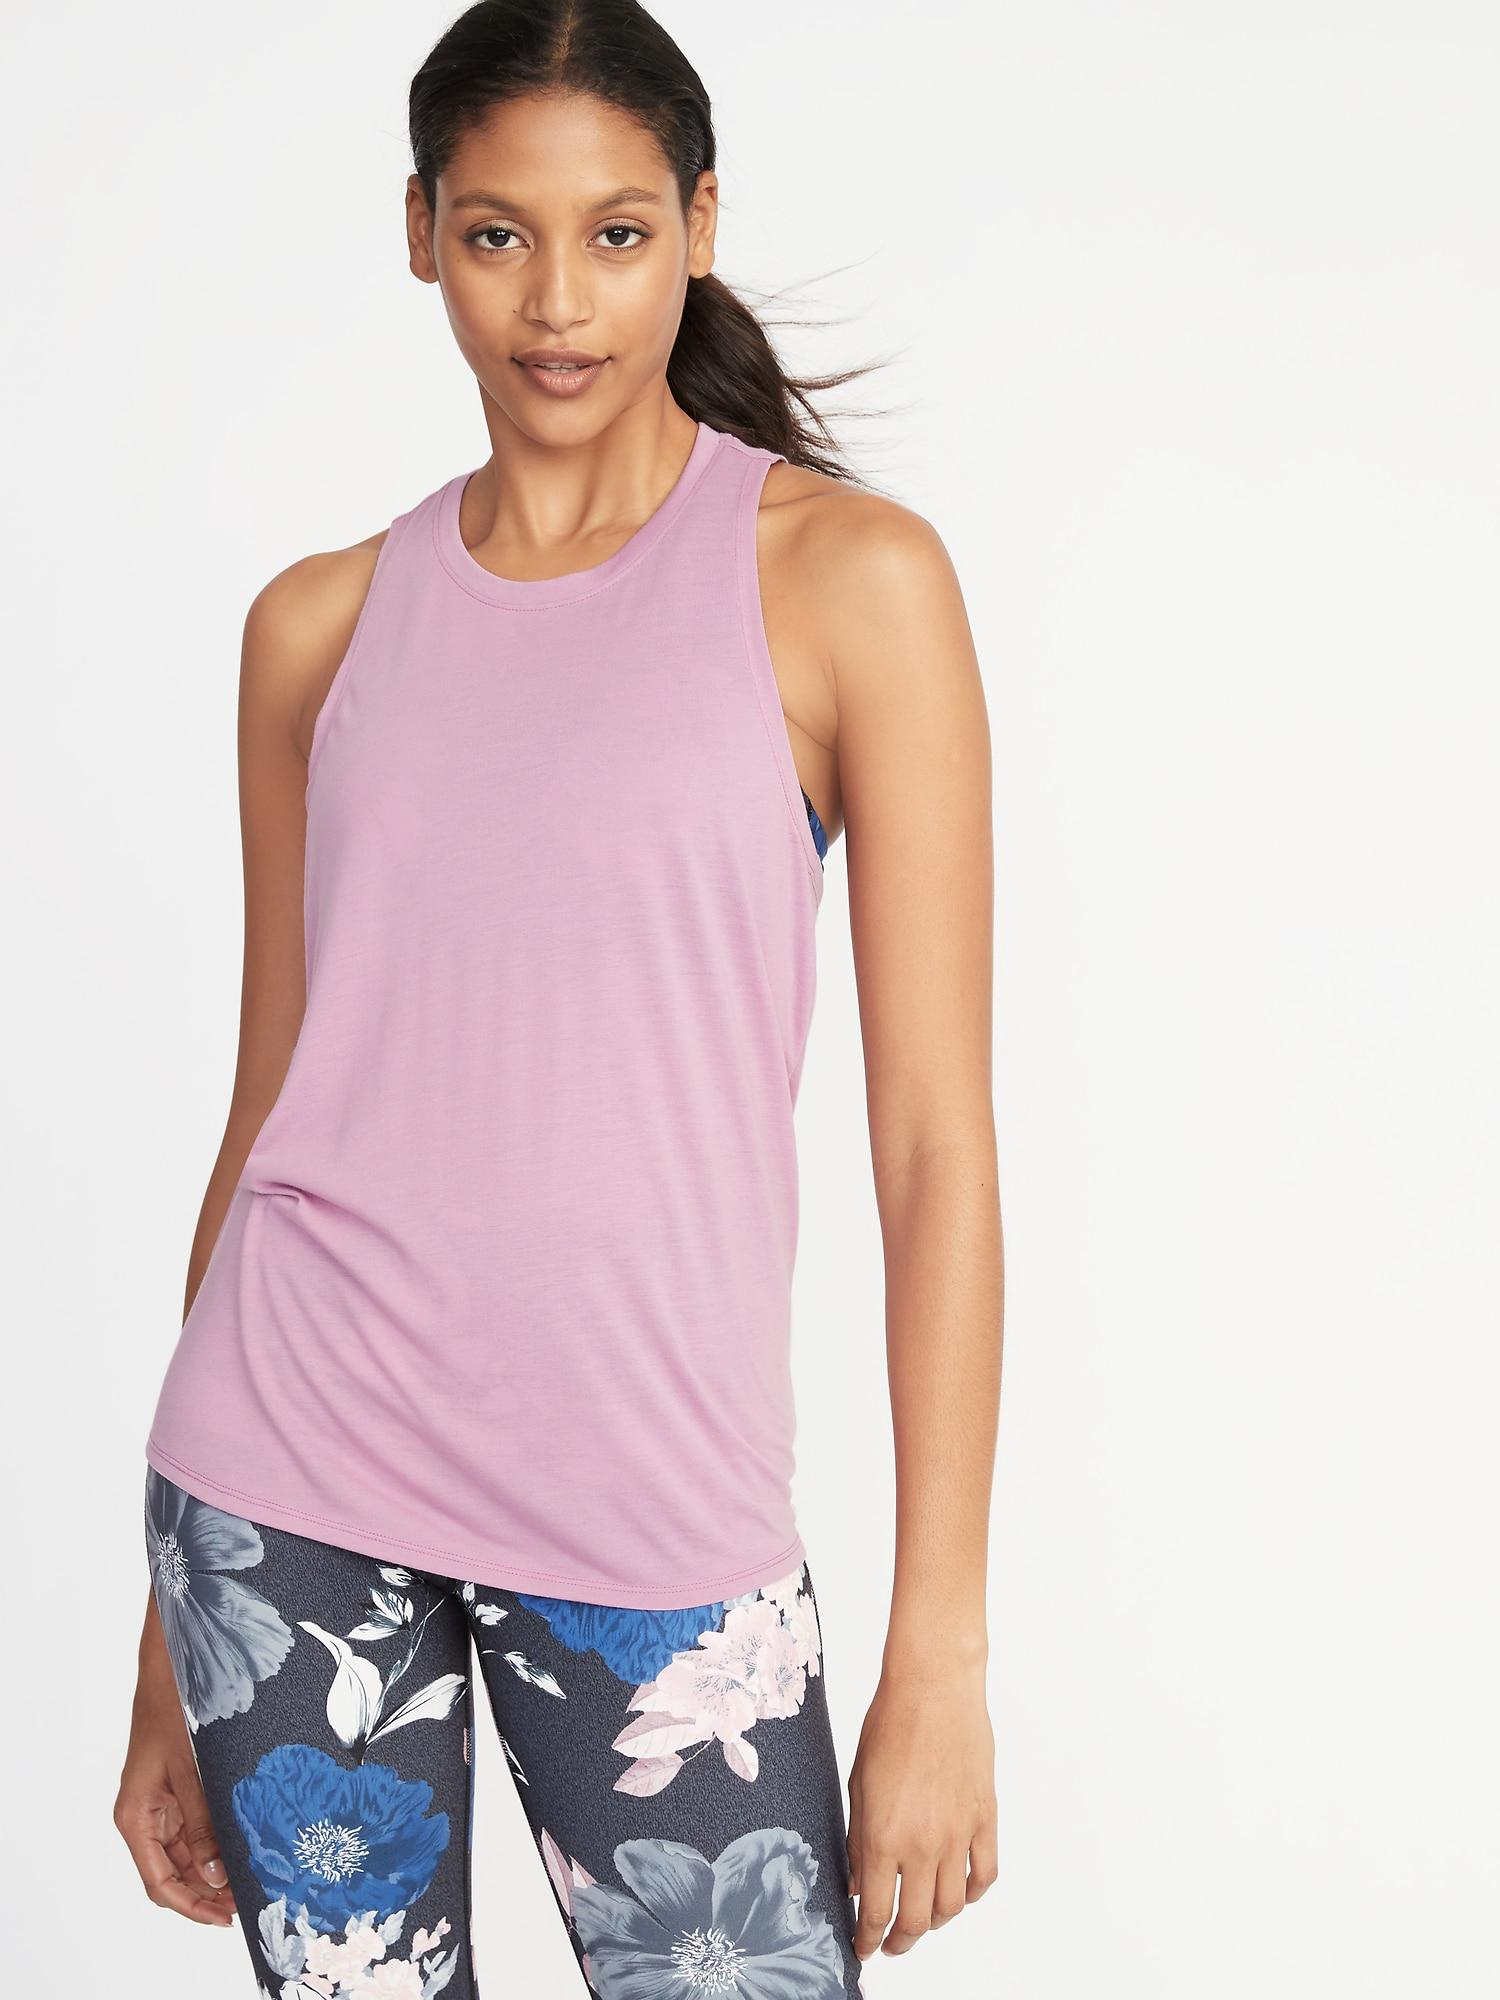 75066d6f85546 Old Navy. Women s Purple Relaxed Lightweight Cross-back Performance Tank